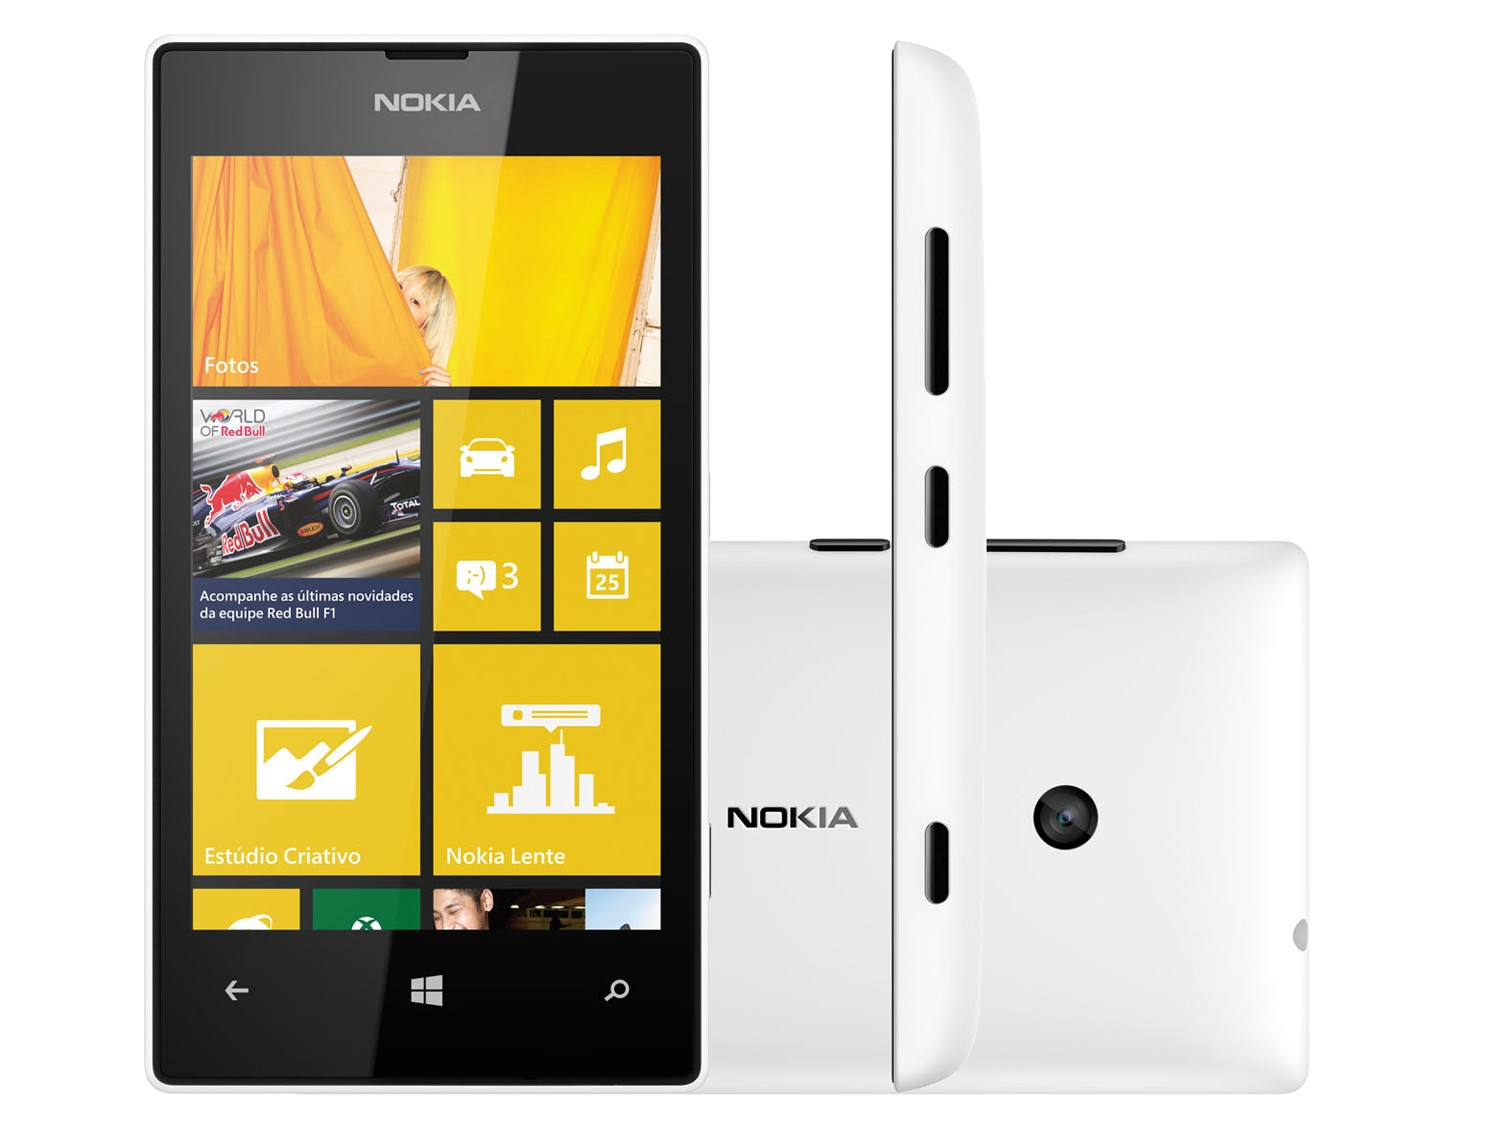 Microsoft Working on New Affordable Windows Phone Device